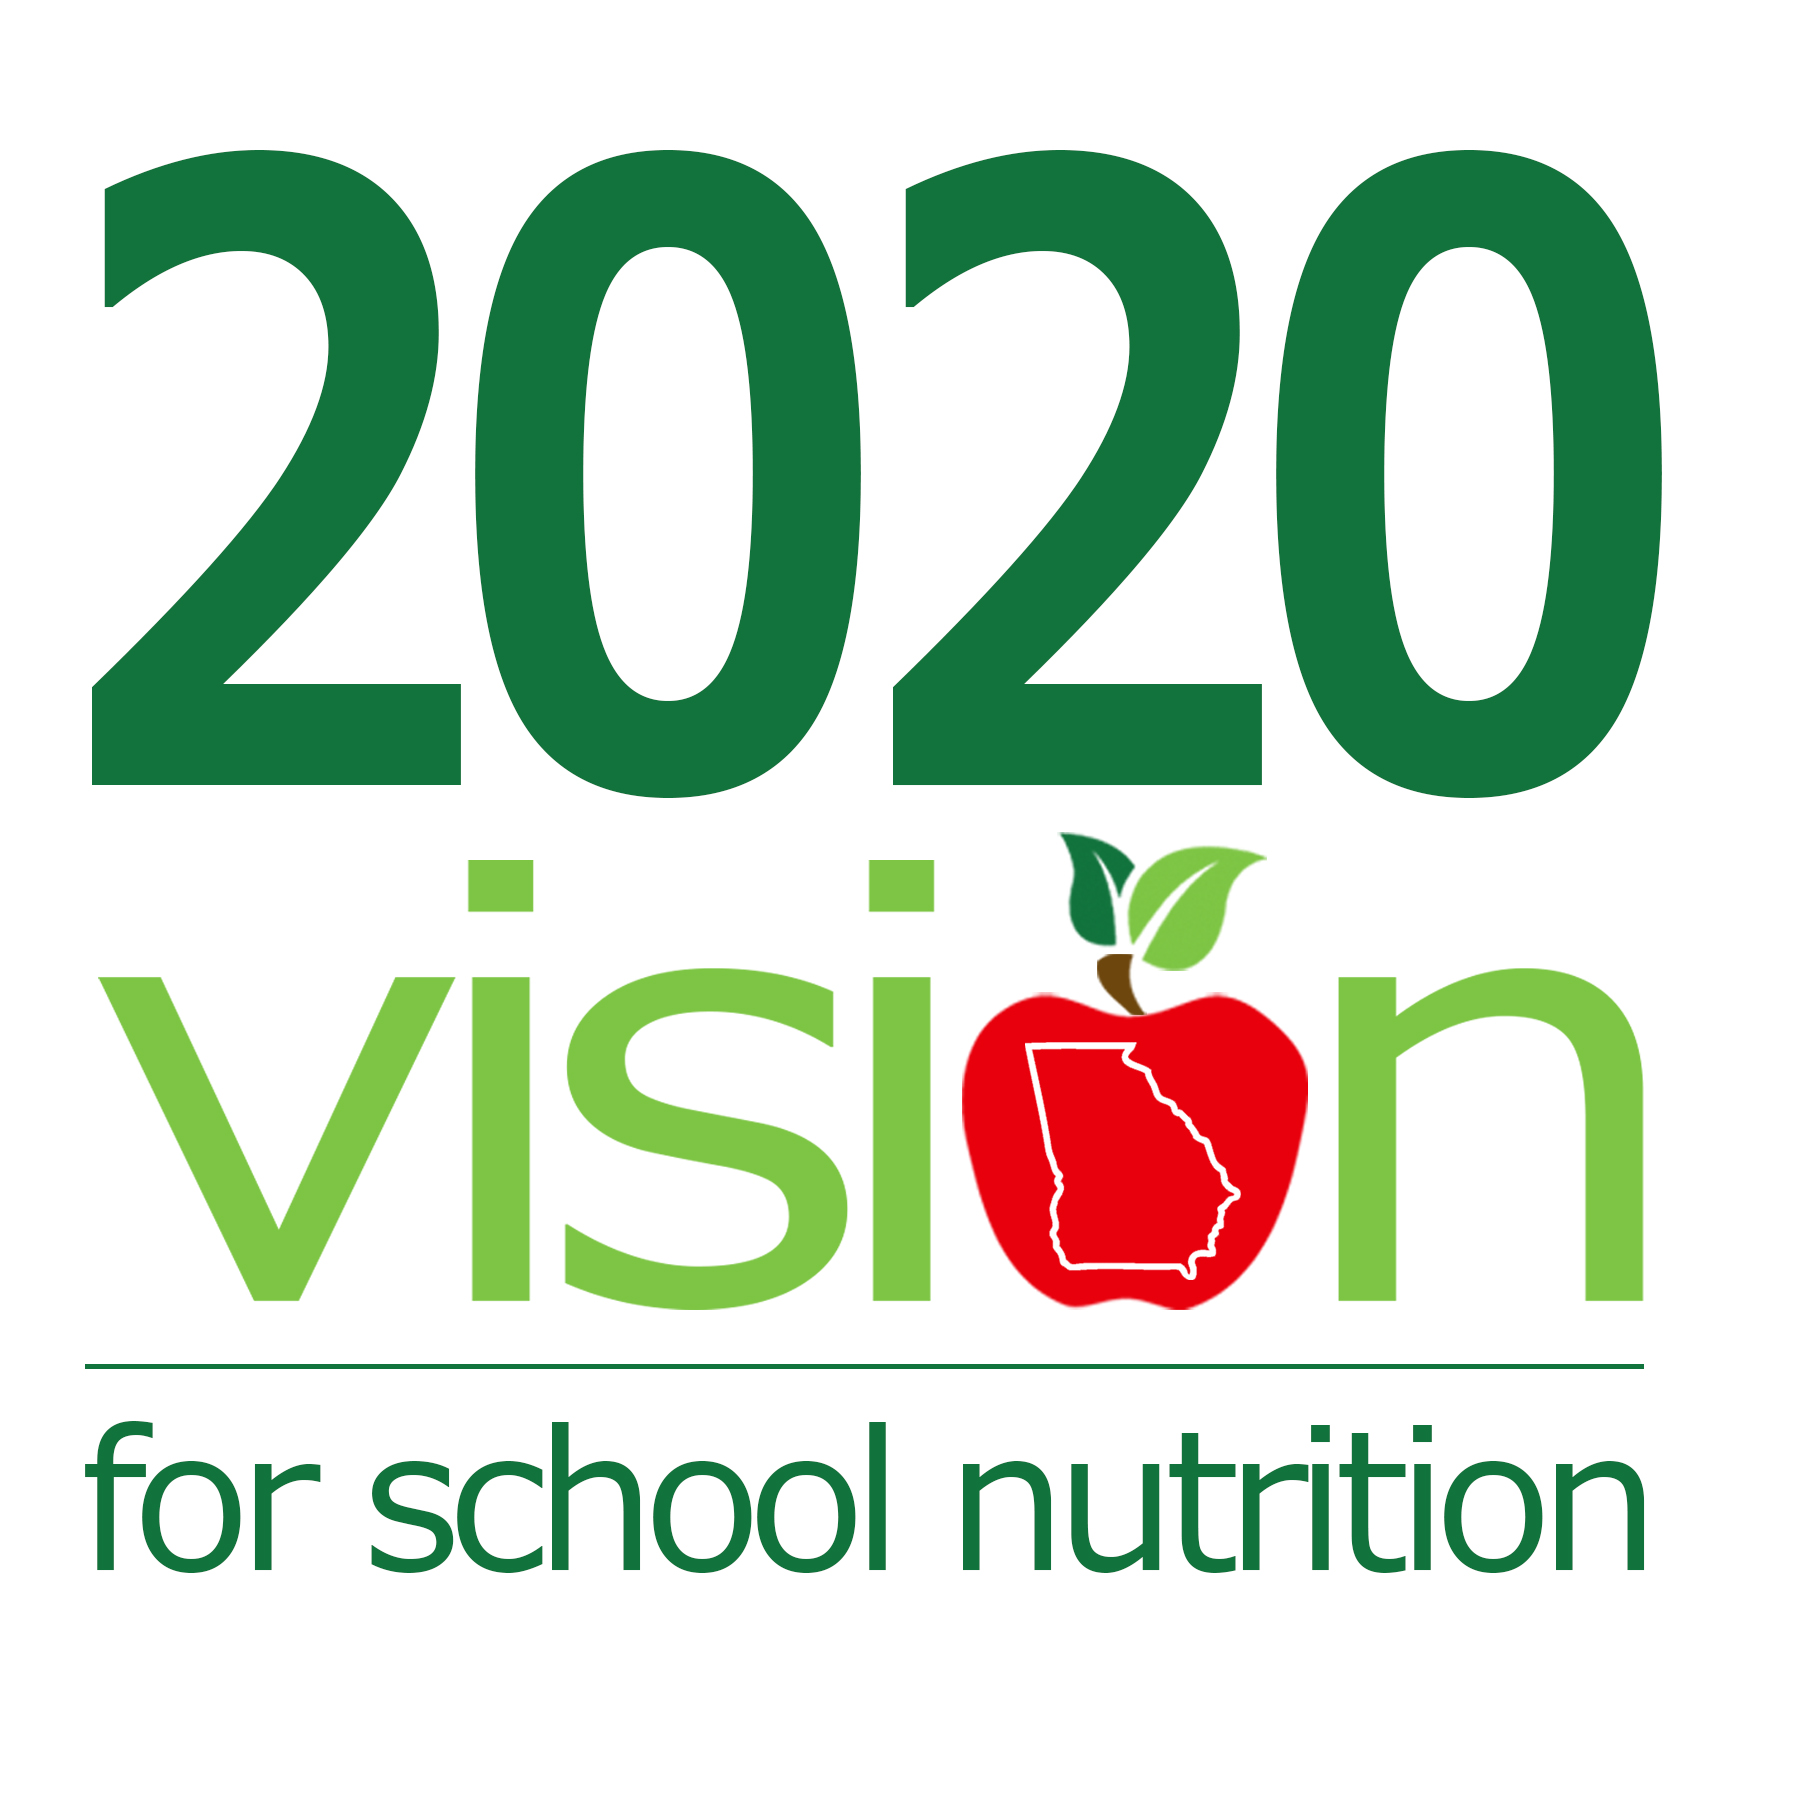 2020 vision for School Nutrition